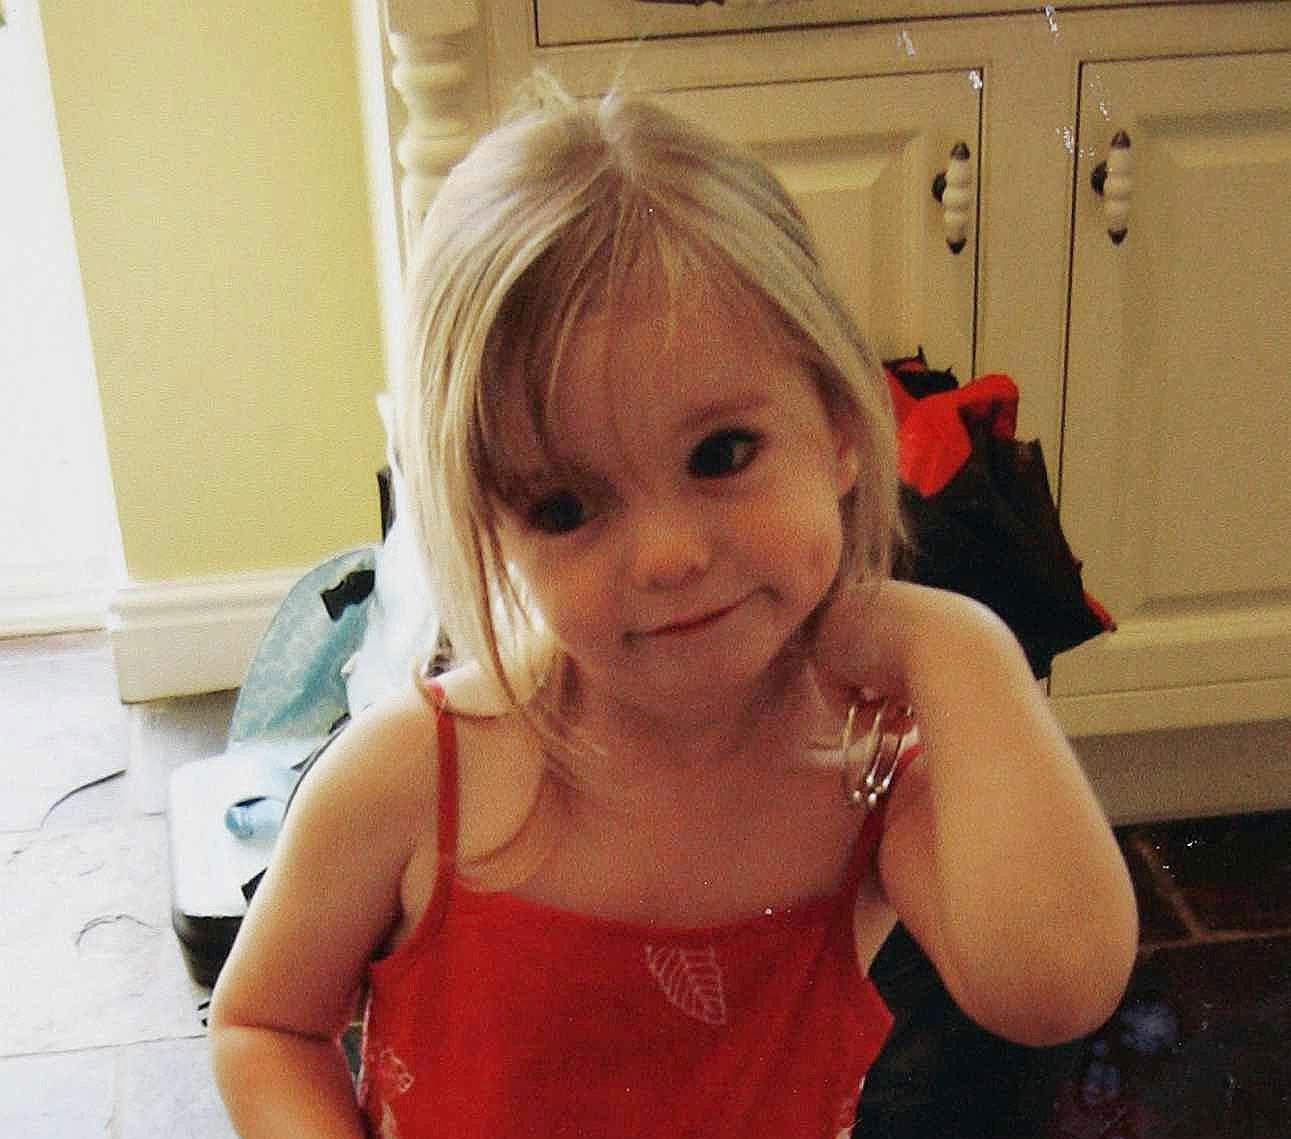 Undated family handout of missing three-year-old Madeleine McCann.